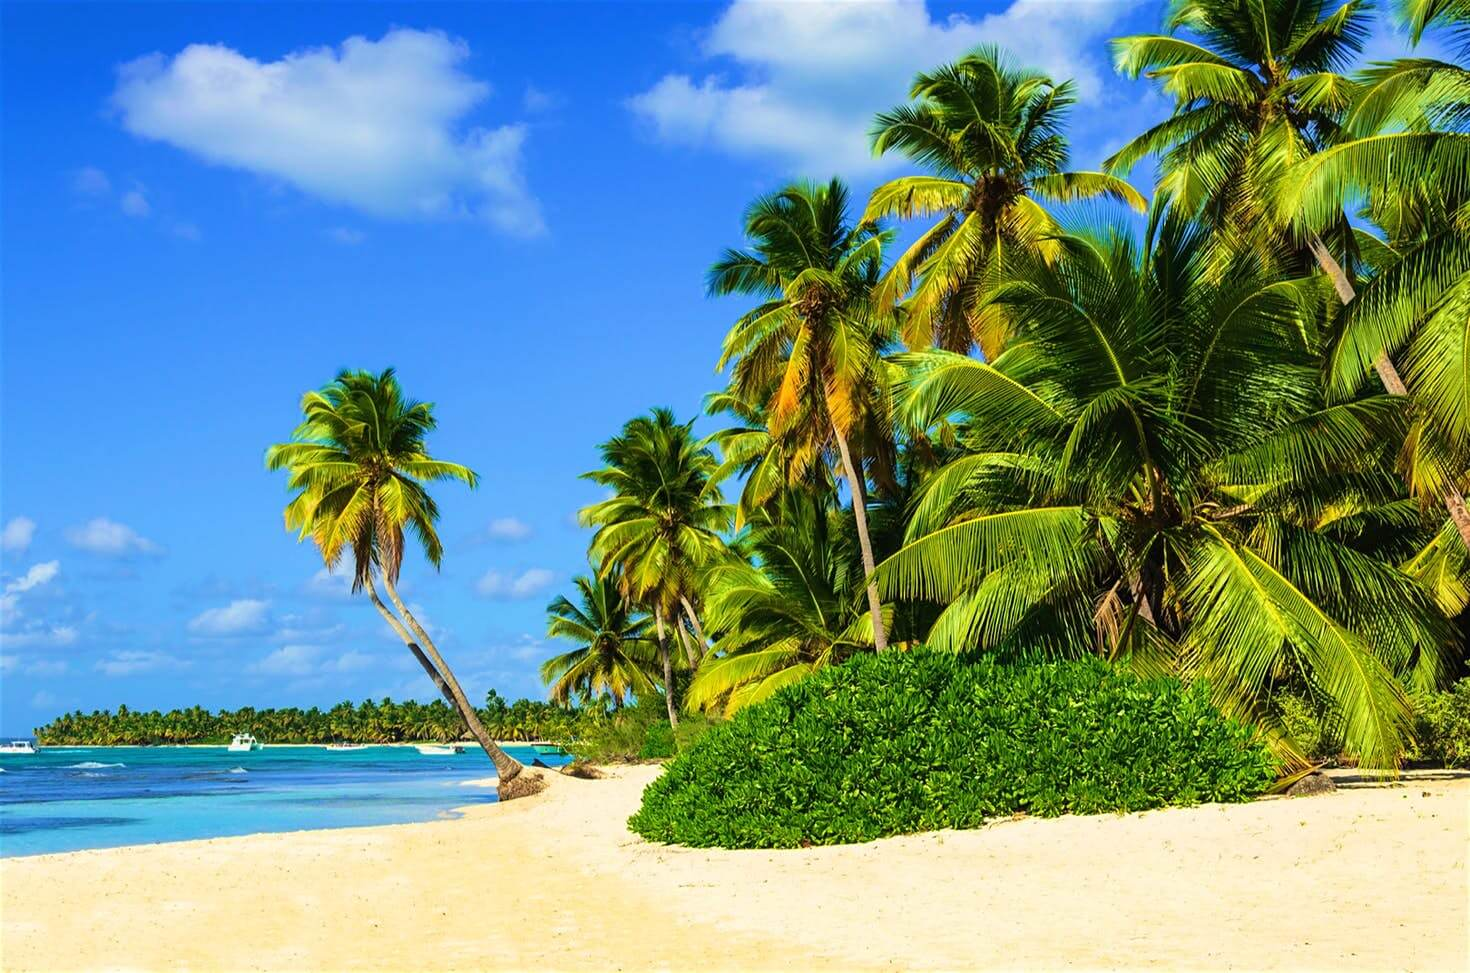 Caribbean's first travel guide is launched